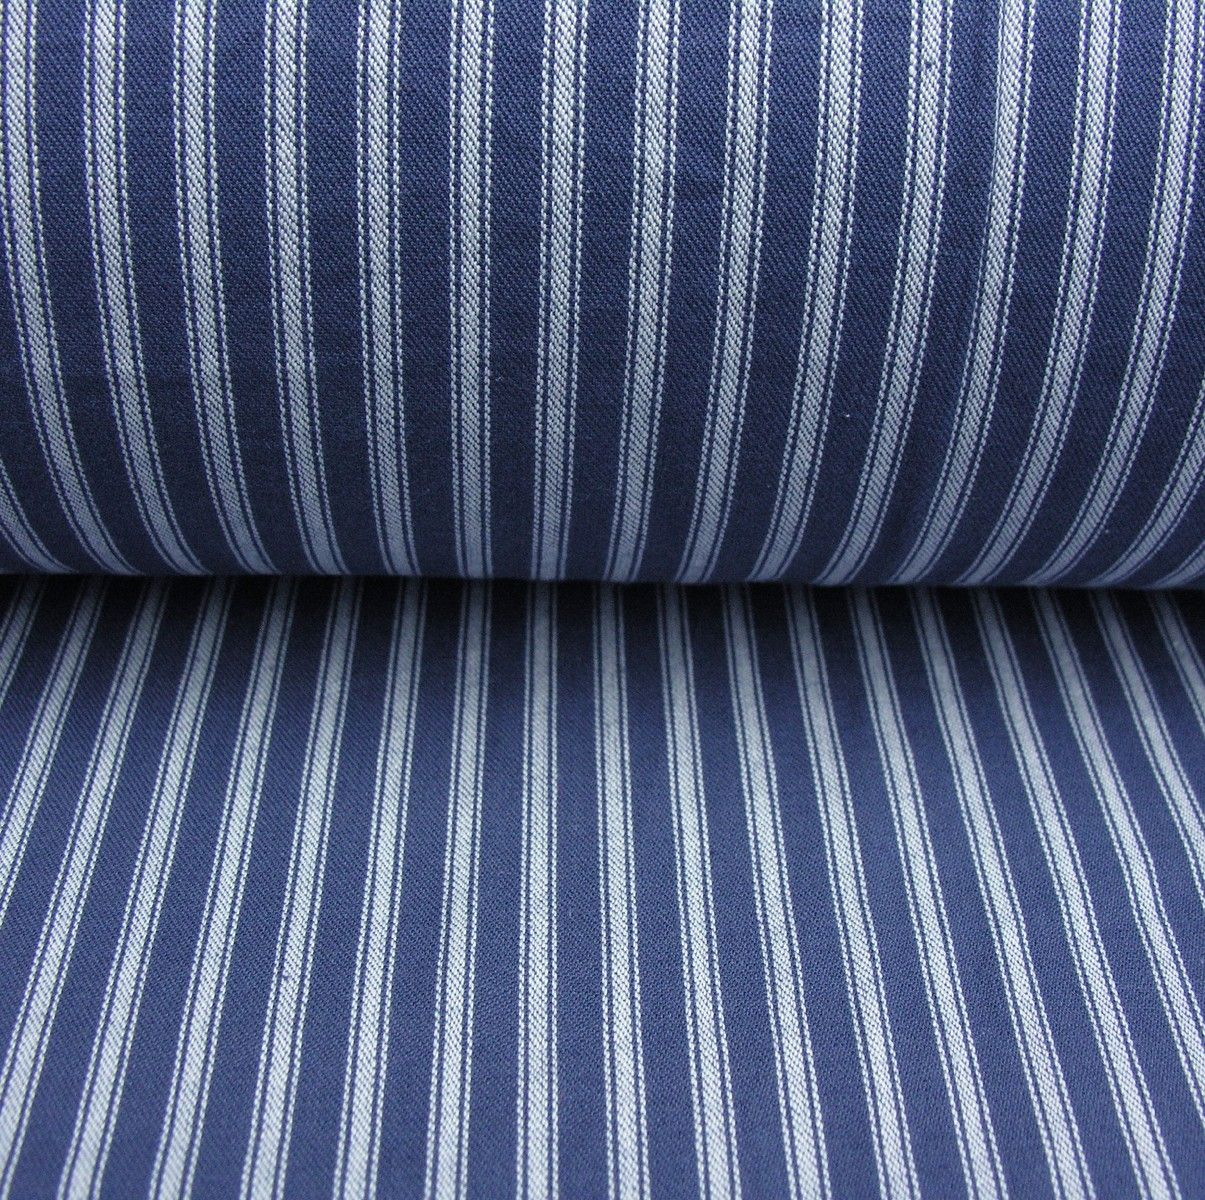 Ticking Fabric Reverse Cobalt Ticking Fabric House By